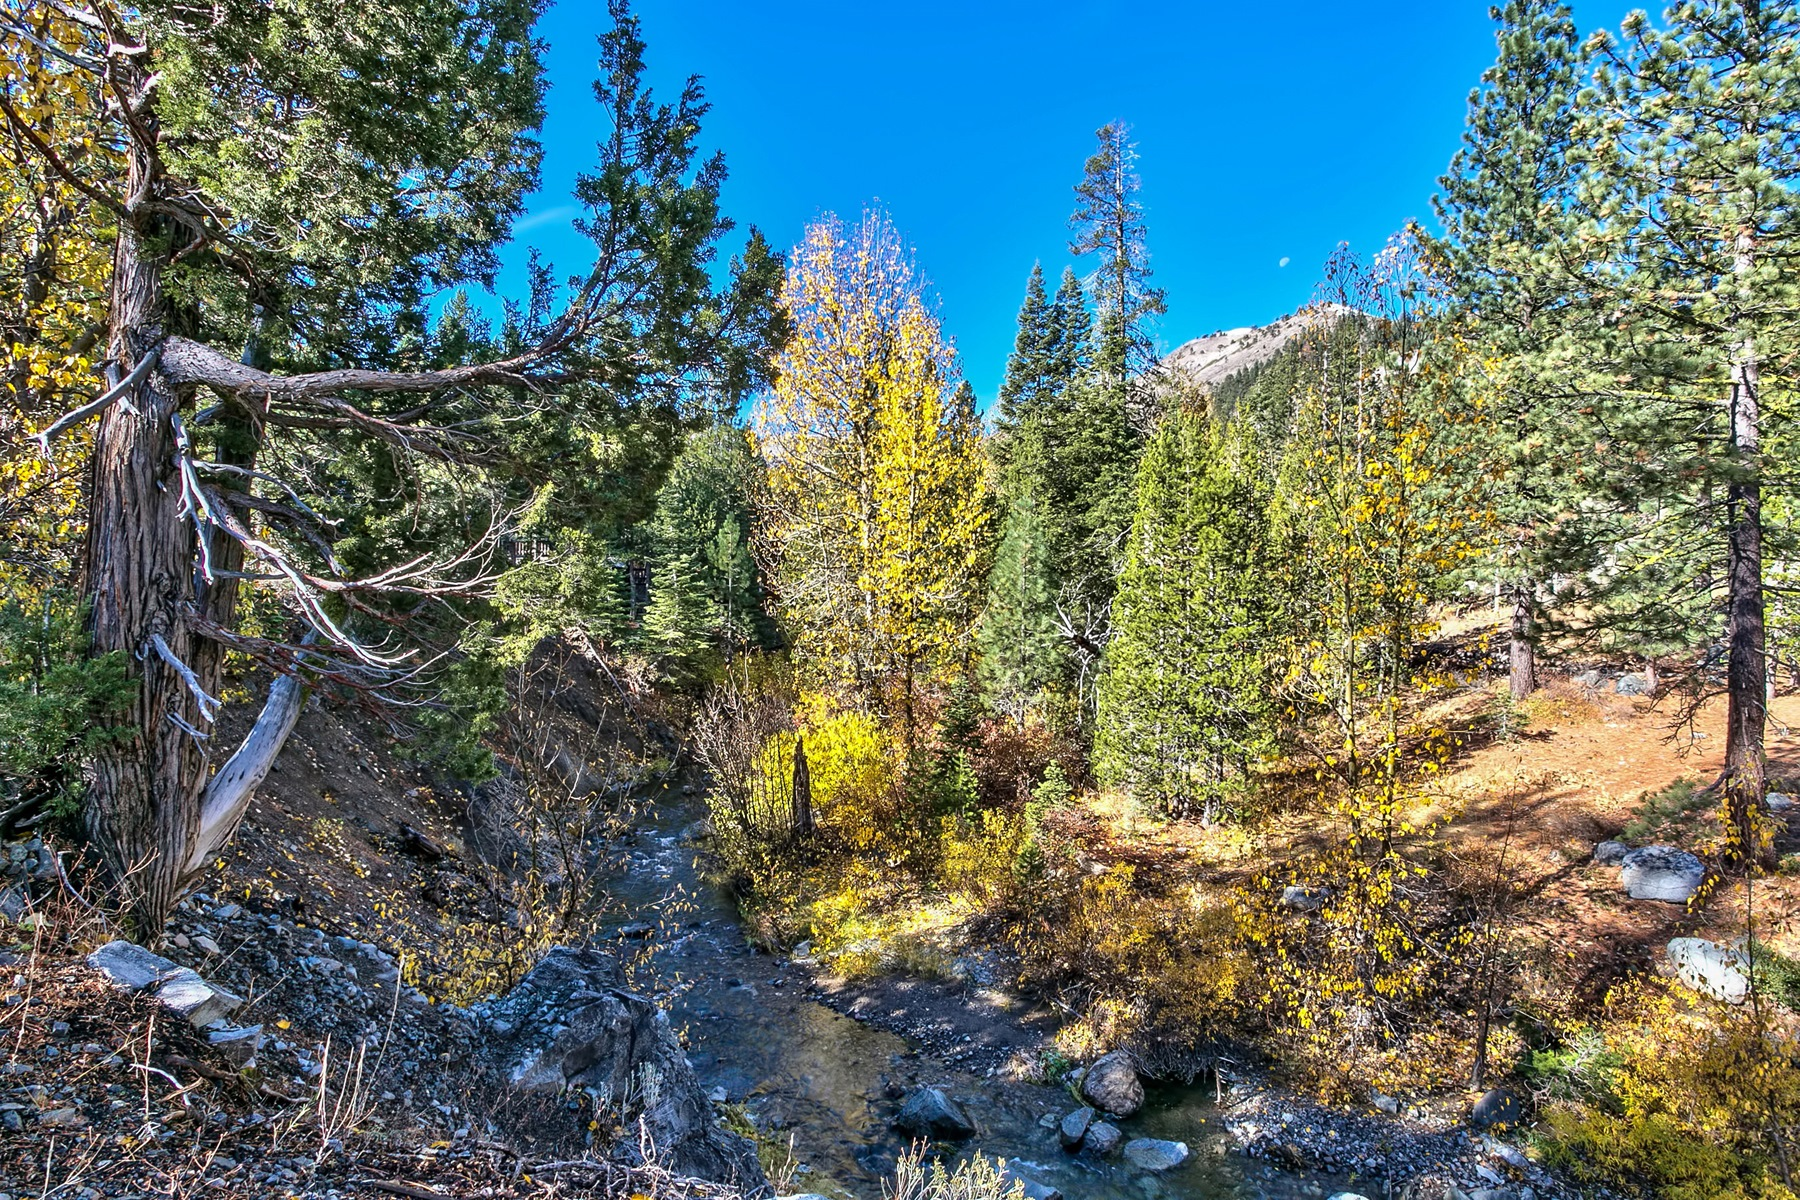 Compra di terreno in 1432 Mineral Springs Trail, Alpine Meadows, California ,96146